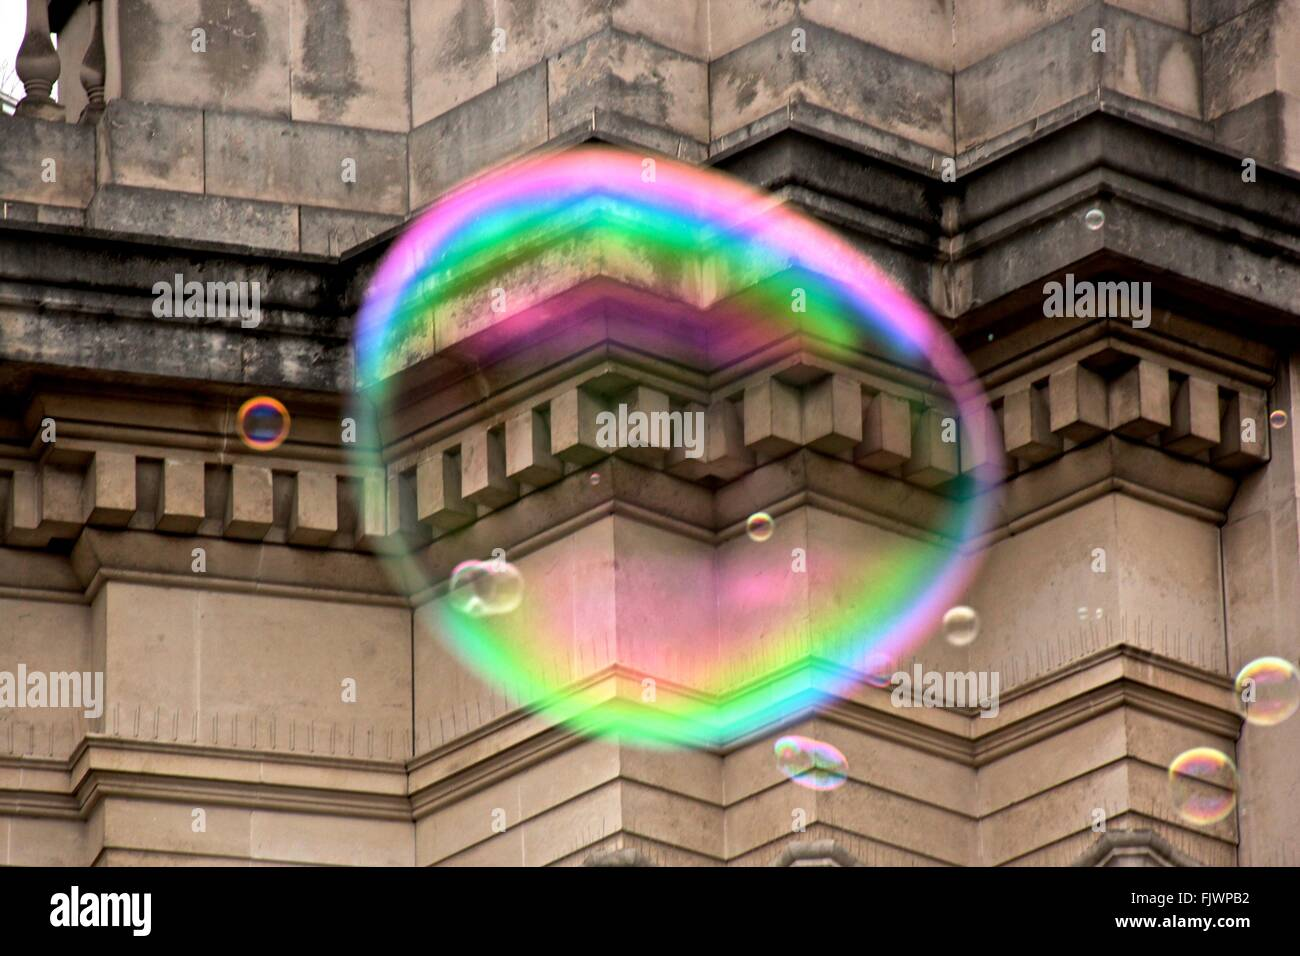 Low Angle View Of Colorful Soap Bubbles Against Old Building - Stock Image